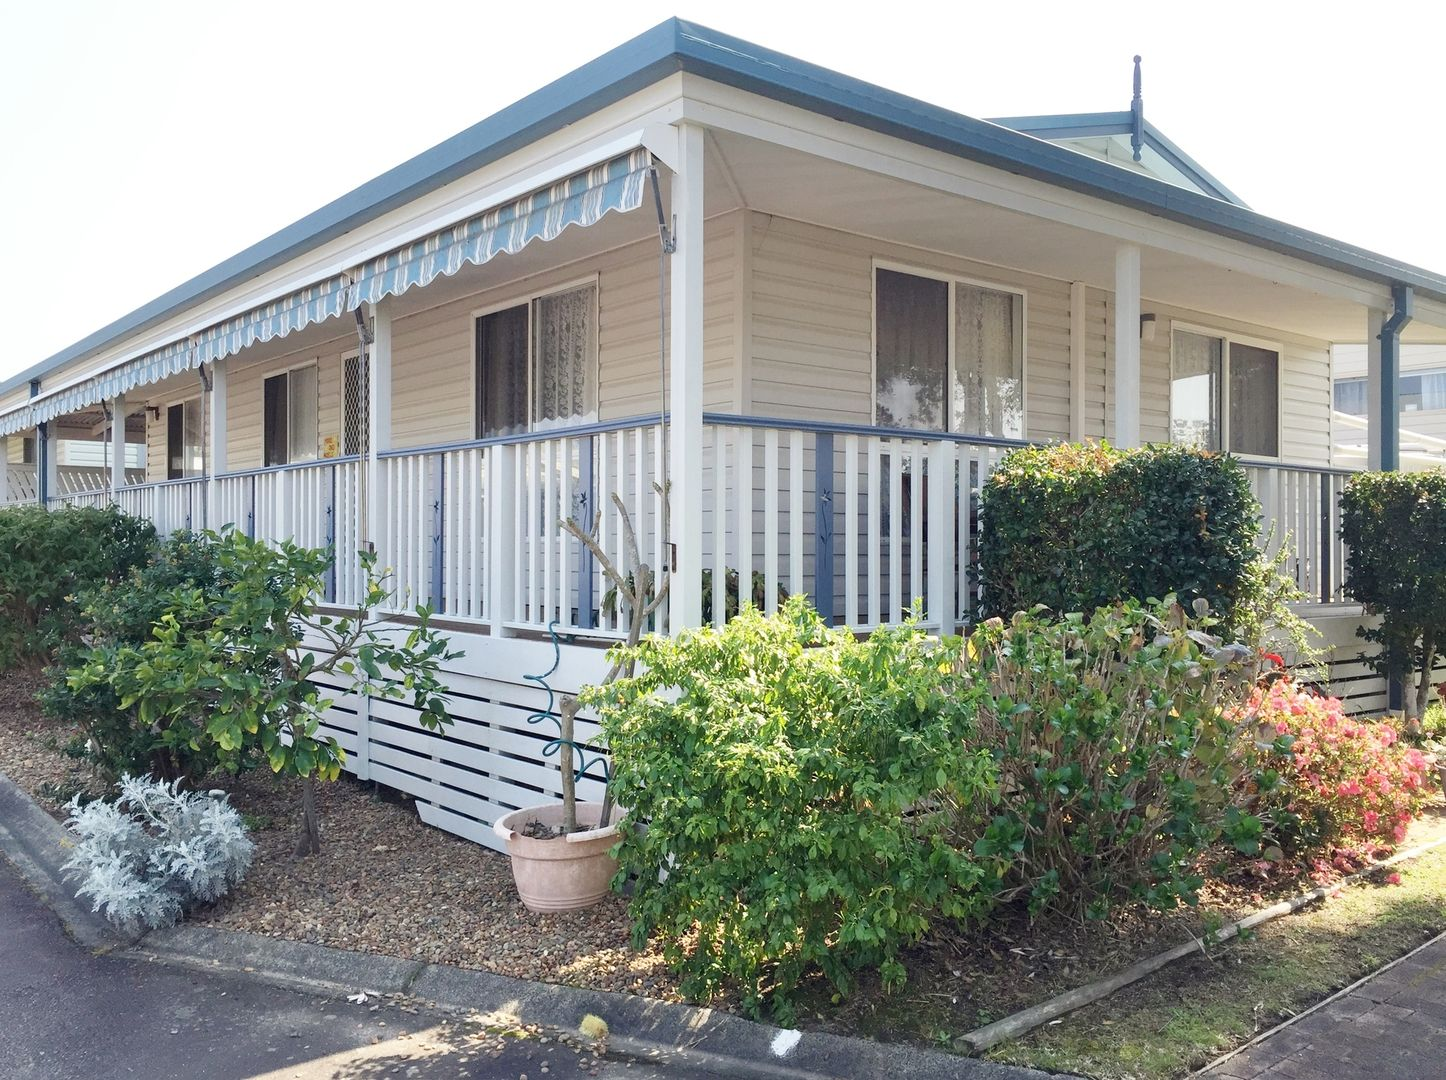 191/25 Mulloway Road, Chain Valley Bay NSW 2259, Image 0